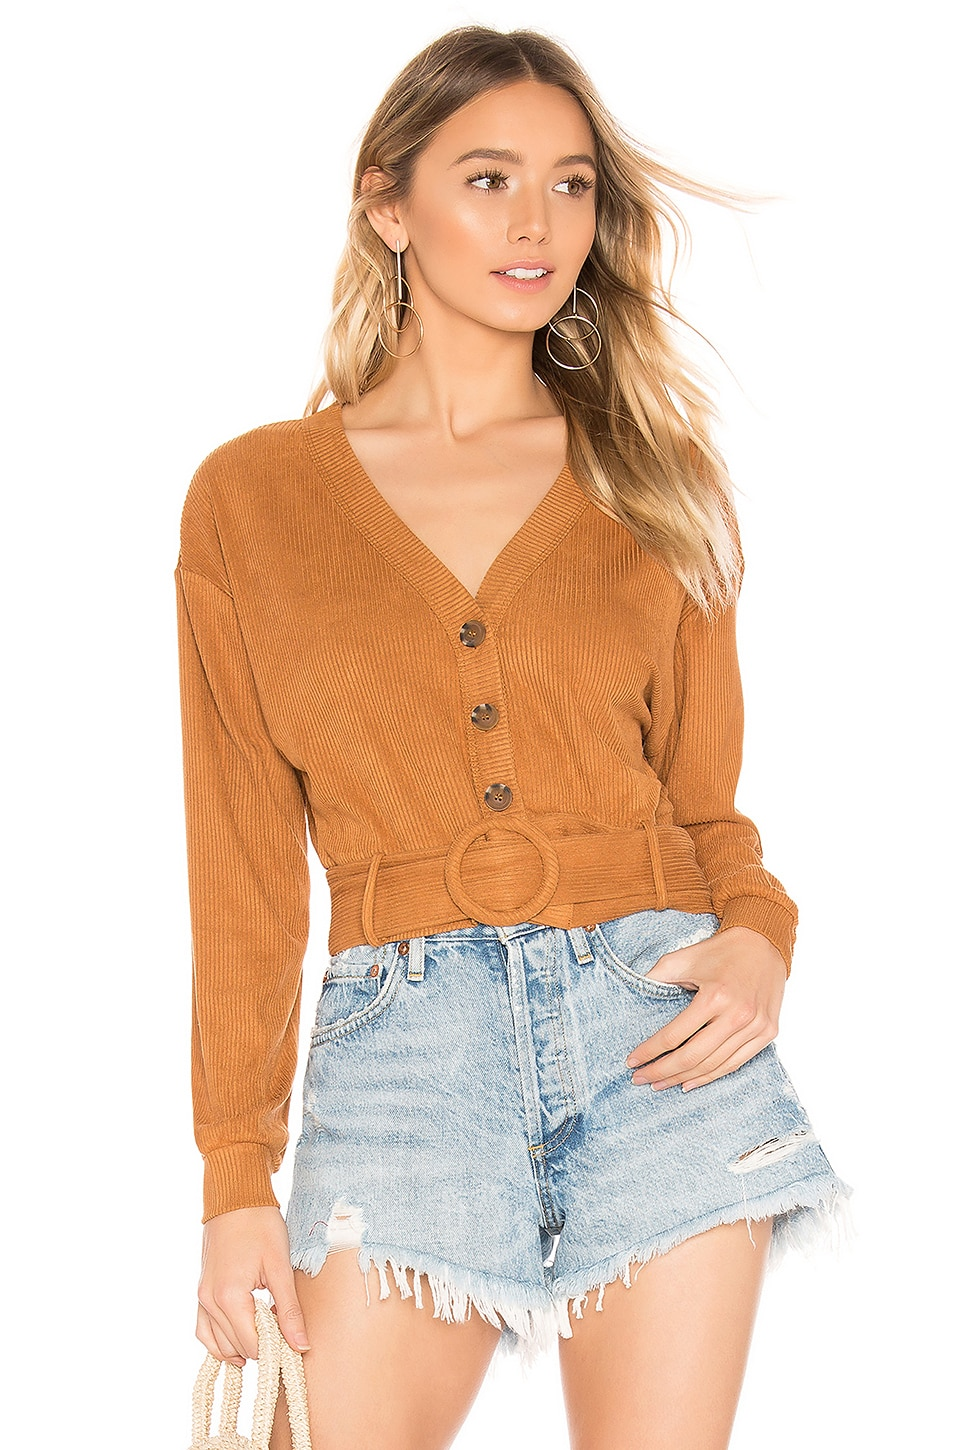 House of Harlow 1960 X REVOLVE Irene Top in Toffee